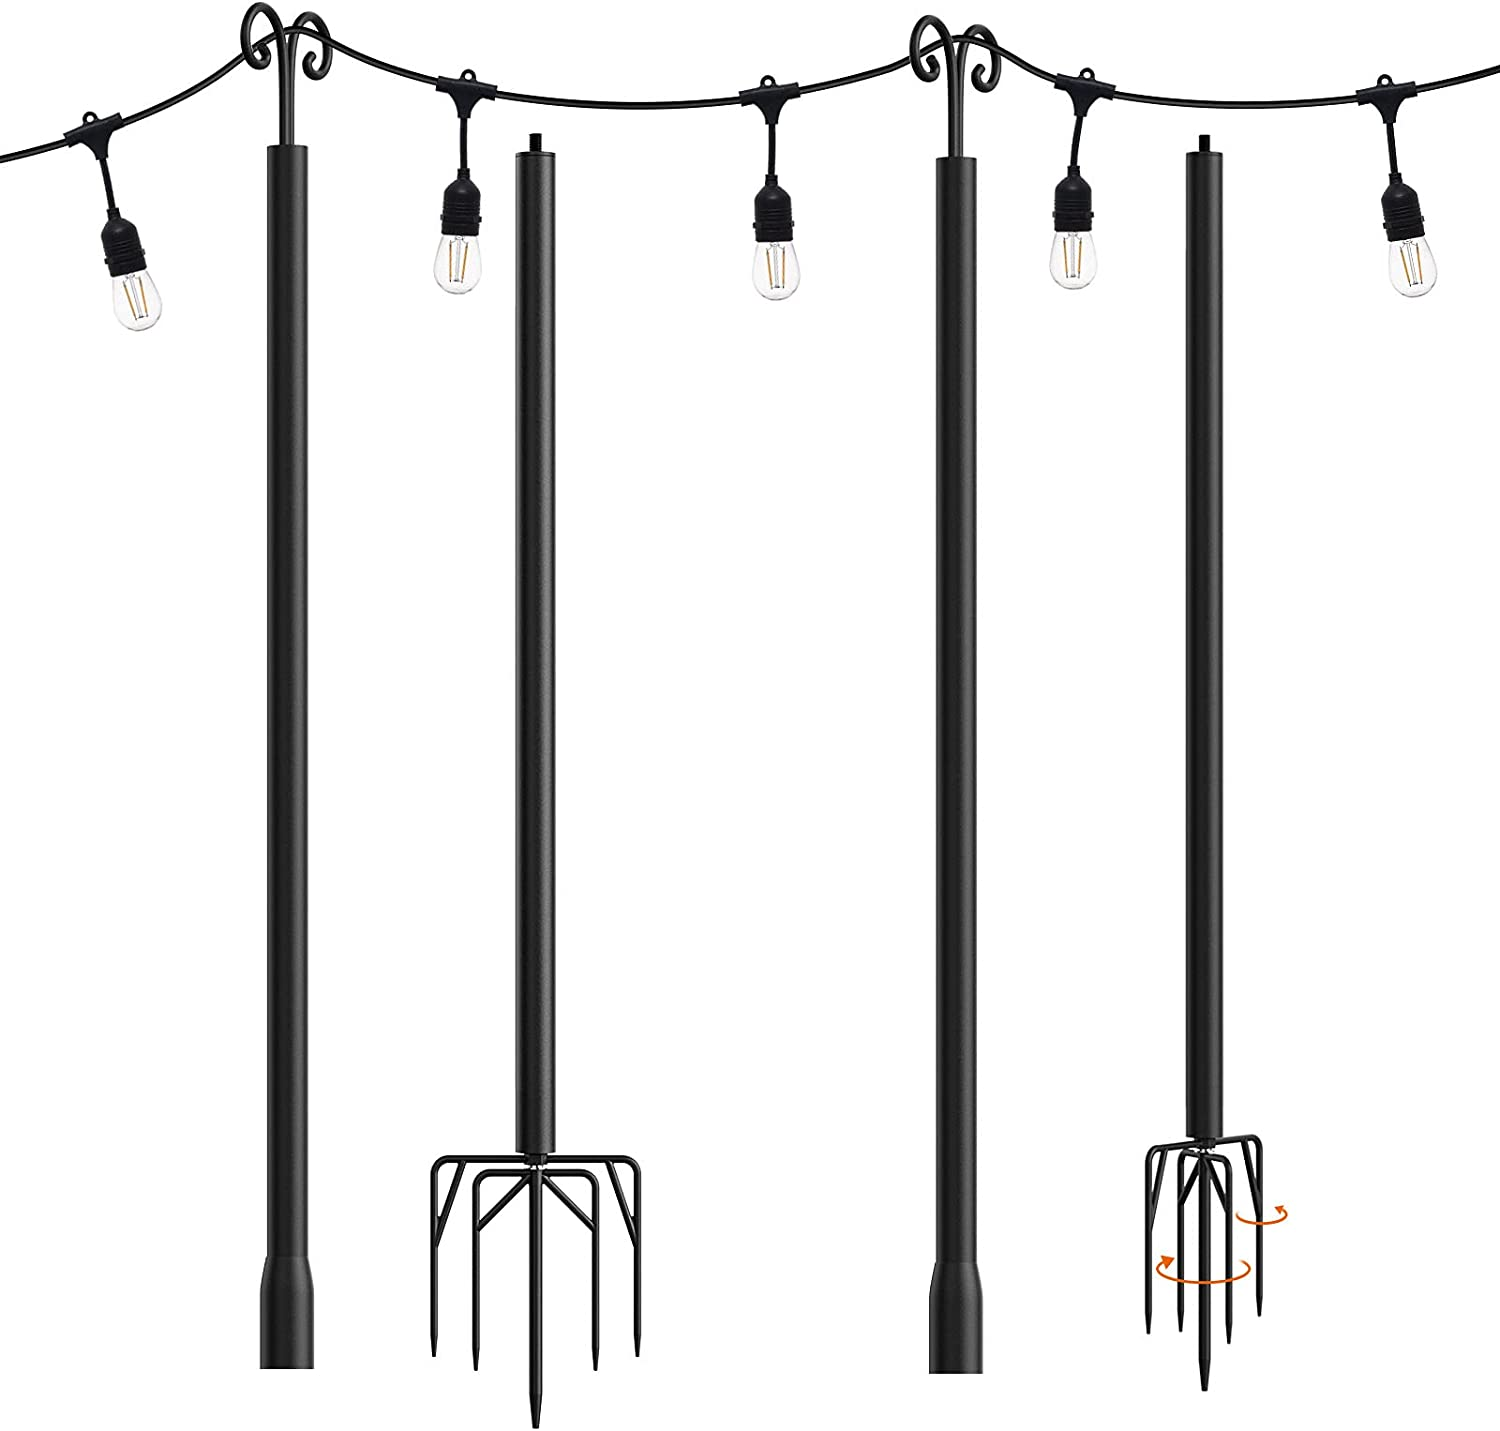 addlon 2 Pack String Lights Poles for Outdoors (2X 10ft), Heavy Duty Designed to Use Year-Round for Your Garden, Patio, Wedding, Party, Birthday Decorations.